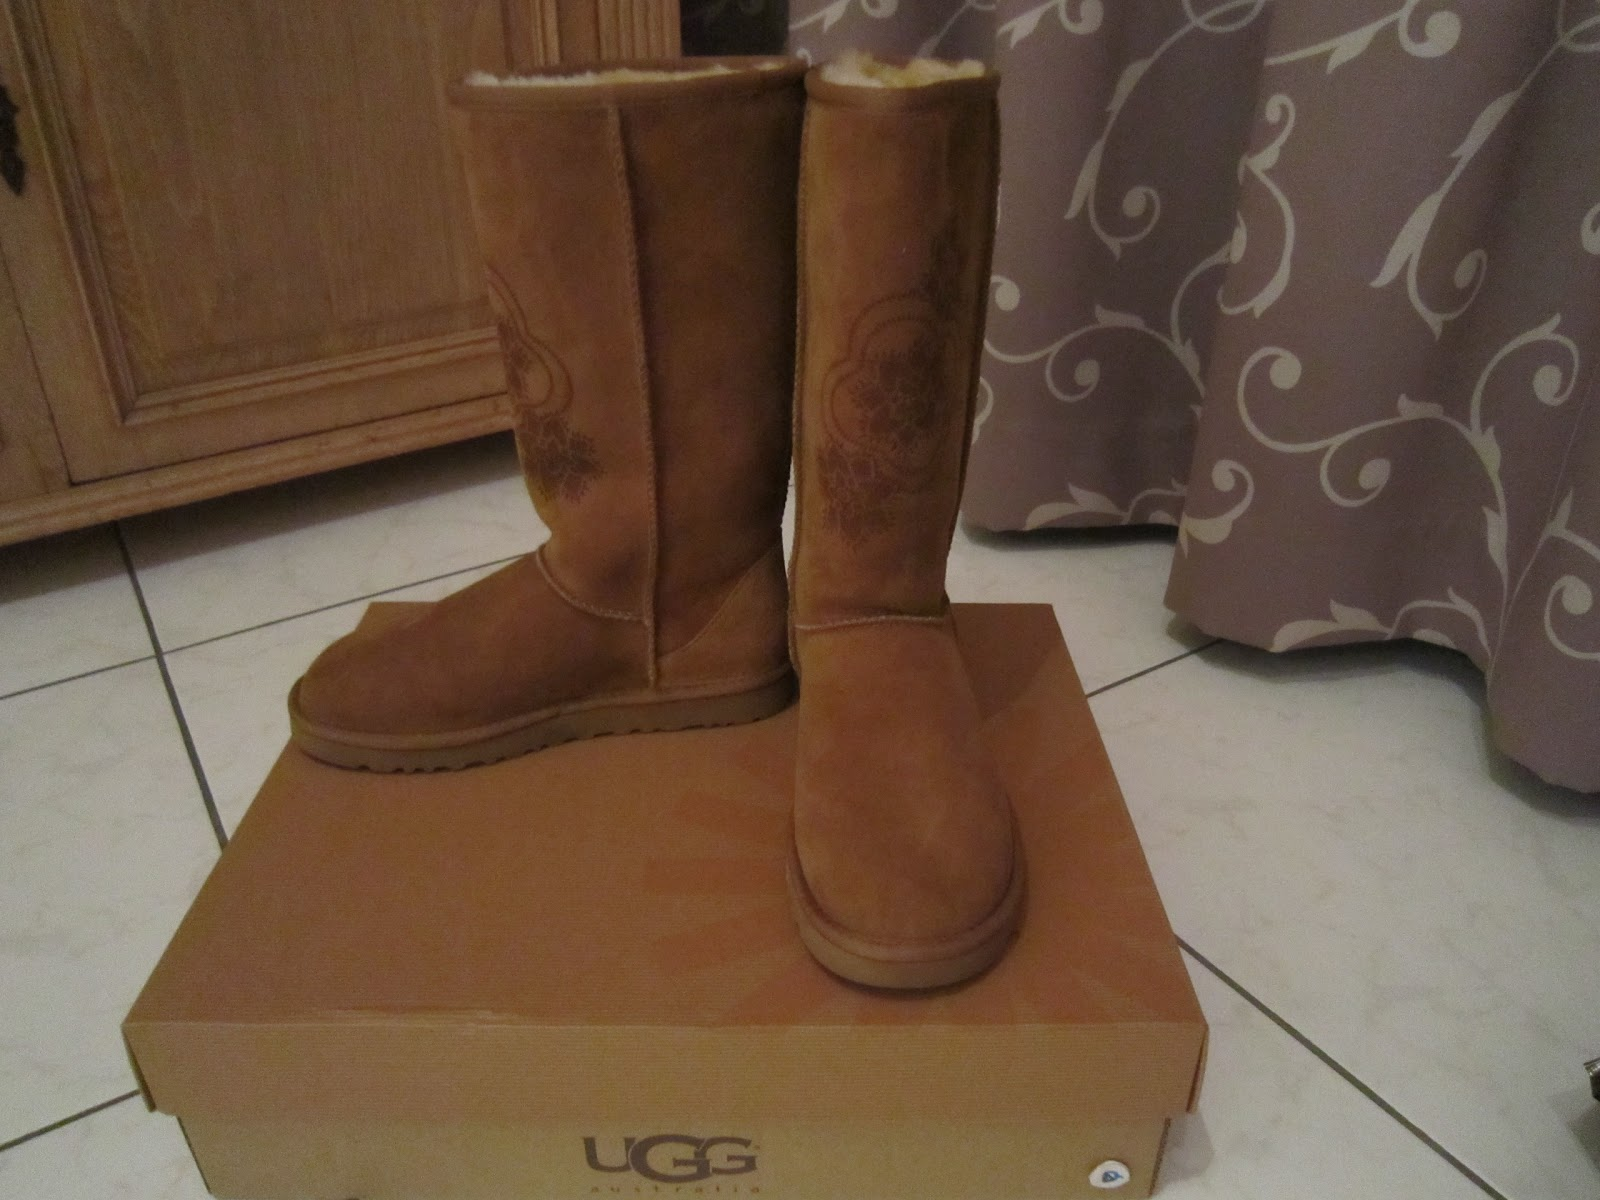 628fffe3b29 Ugg Outlet Los Angeles Ca - cheap watches mgc-gas.com